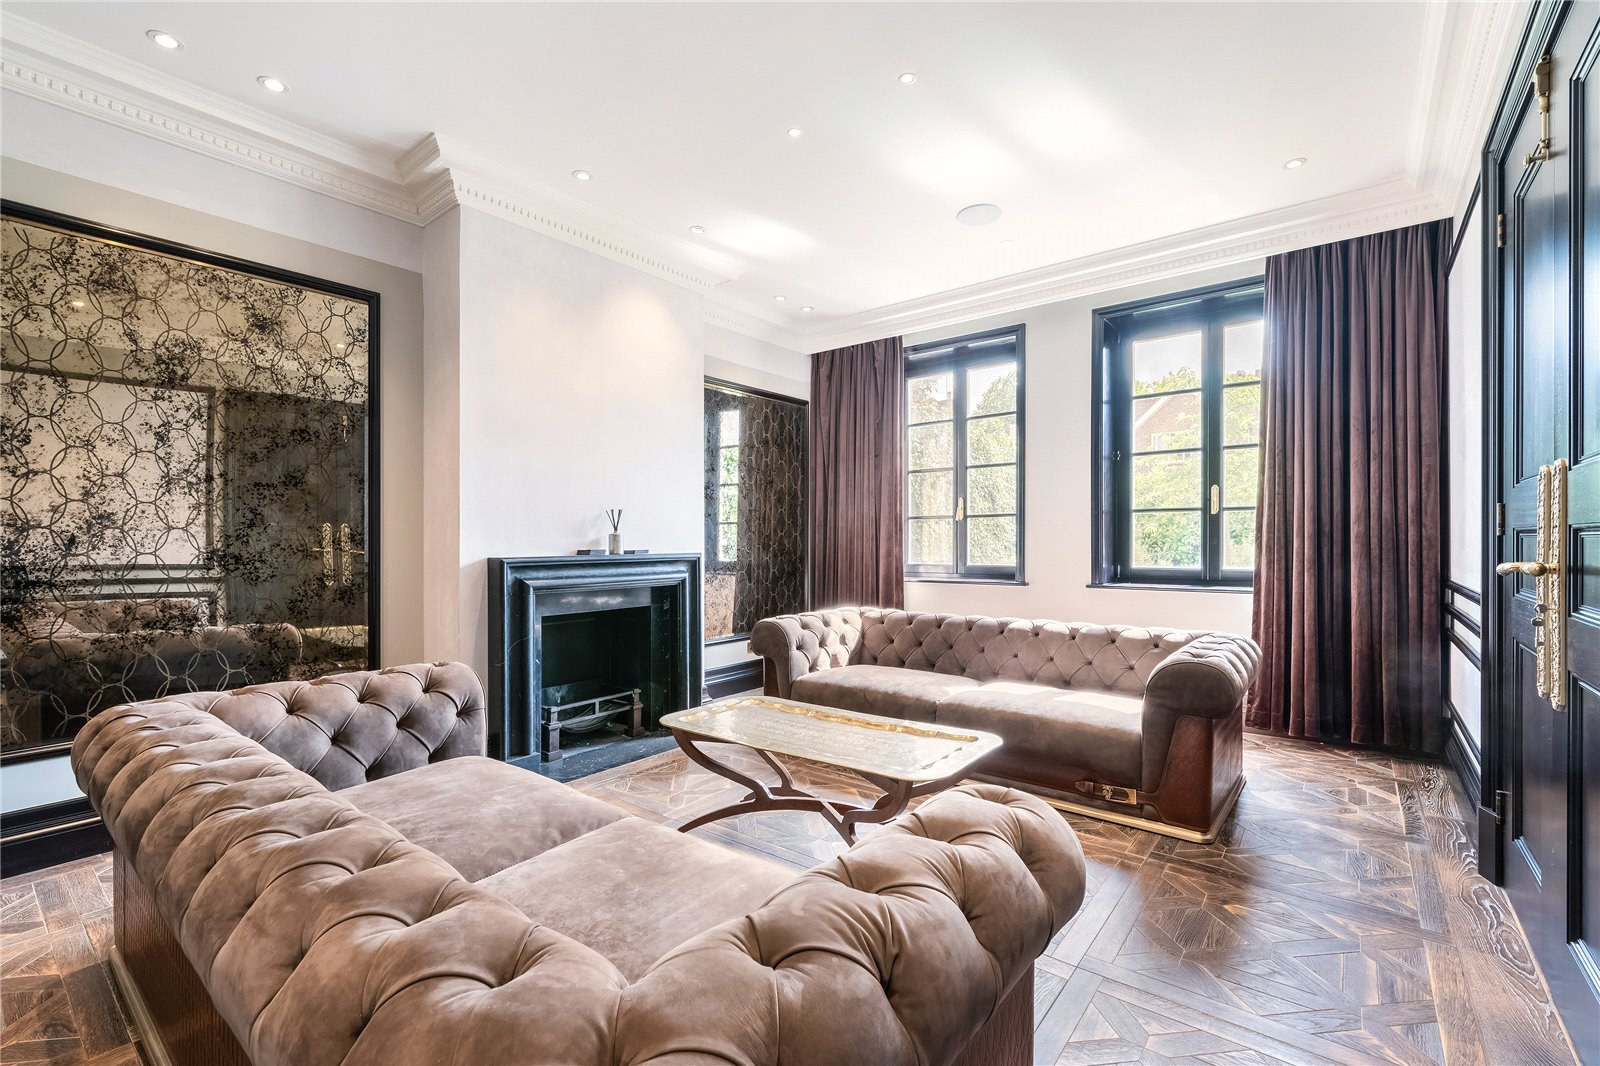 House for Rent at Lambourne Avenue, Wimbledon, London, SW19 Lambourne Avenue, Wimbledon, London, SW19